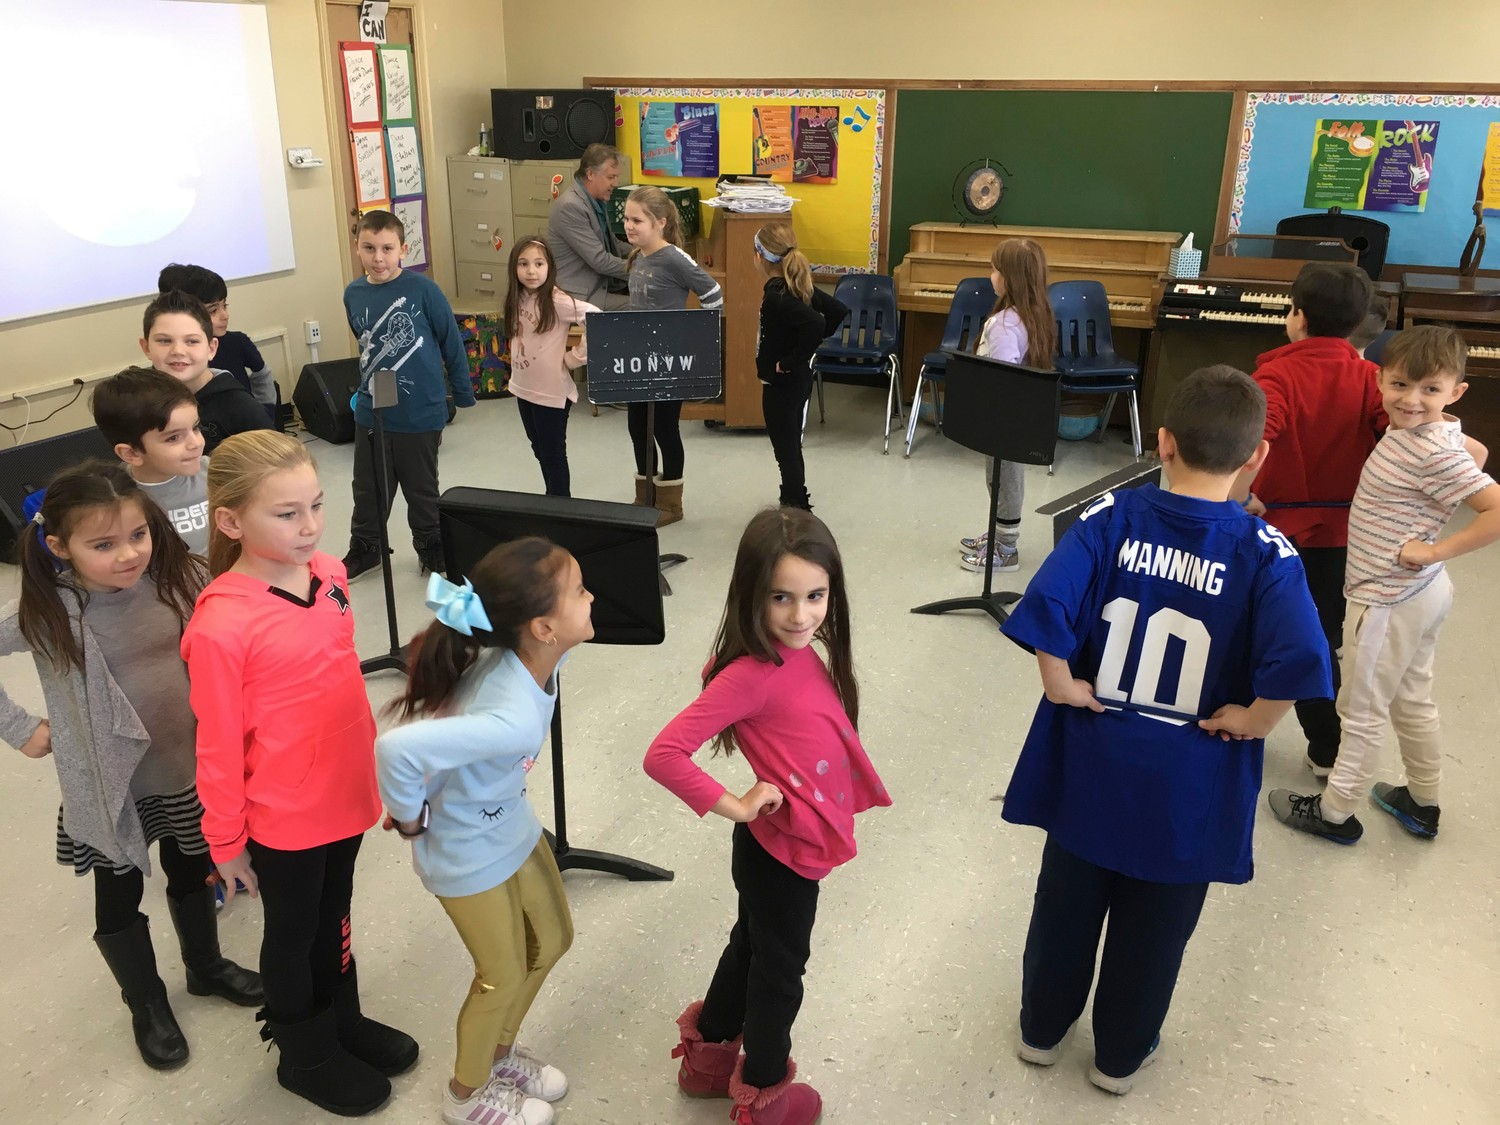 Teacher Jean Marie Aplustille's second-grade class participated in the traditional French dance Los Tachos during a music lesson taught by Rich Adams.